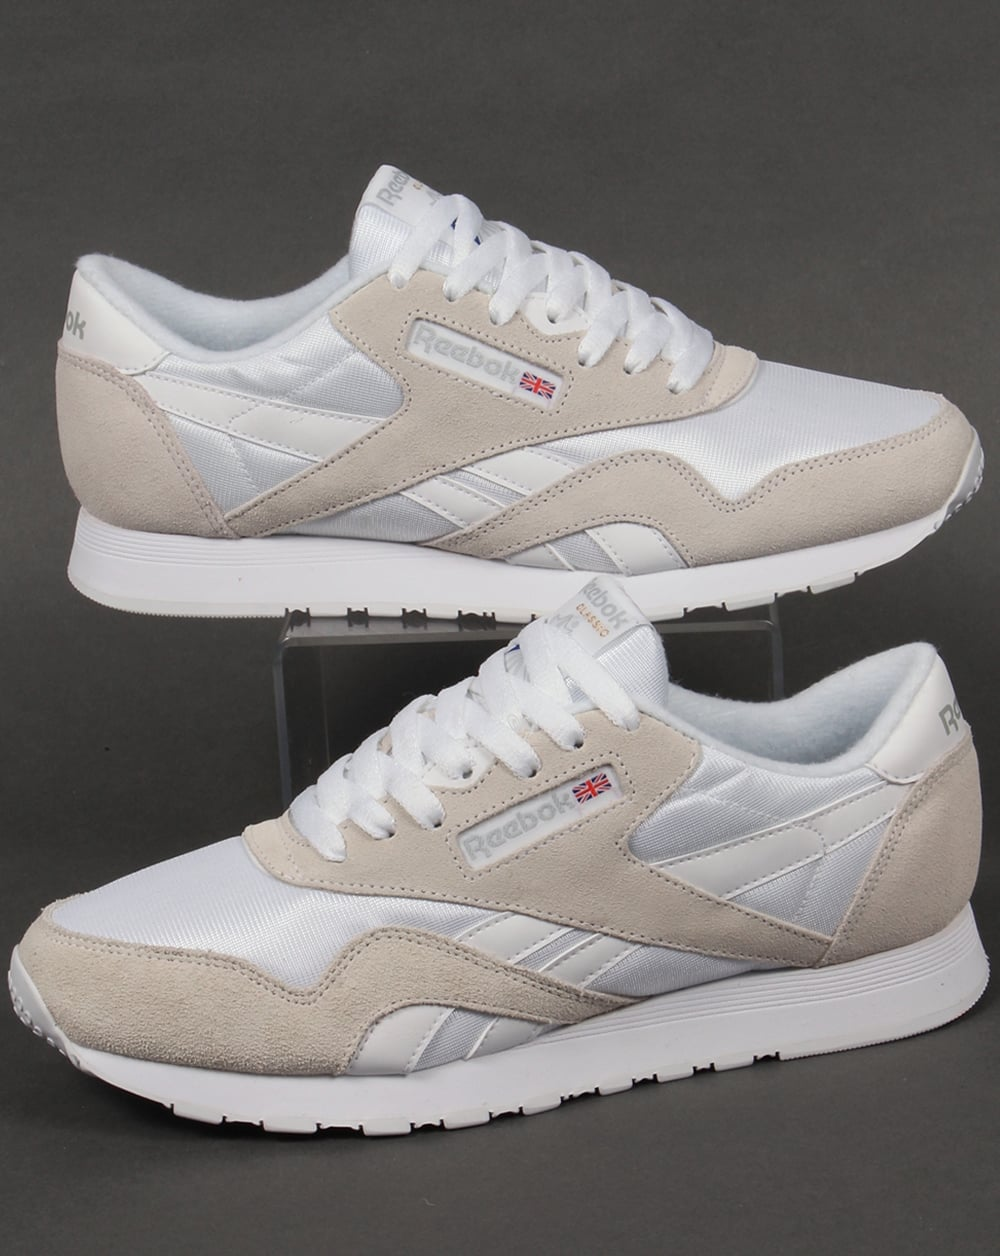 62a2b94750035 Reebok Reebok Classic Nylon Trainers White Light Grey